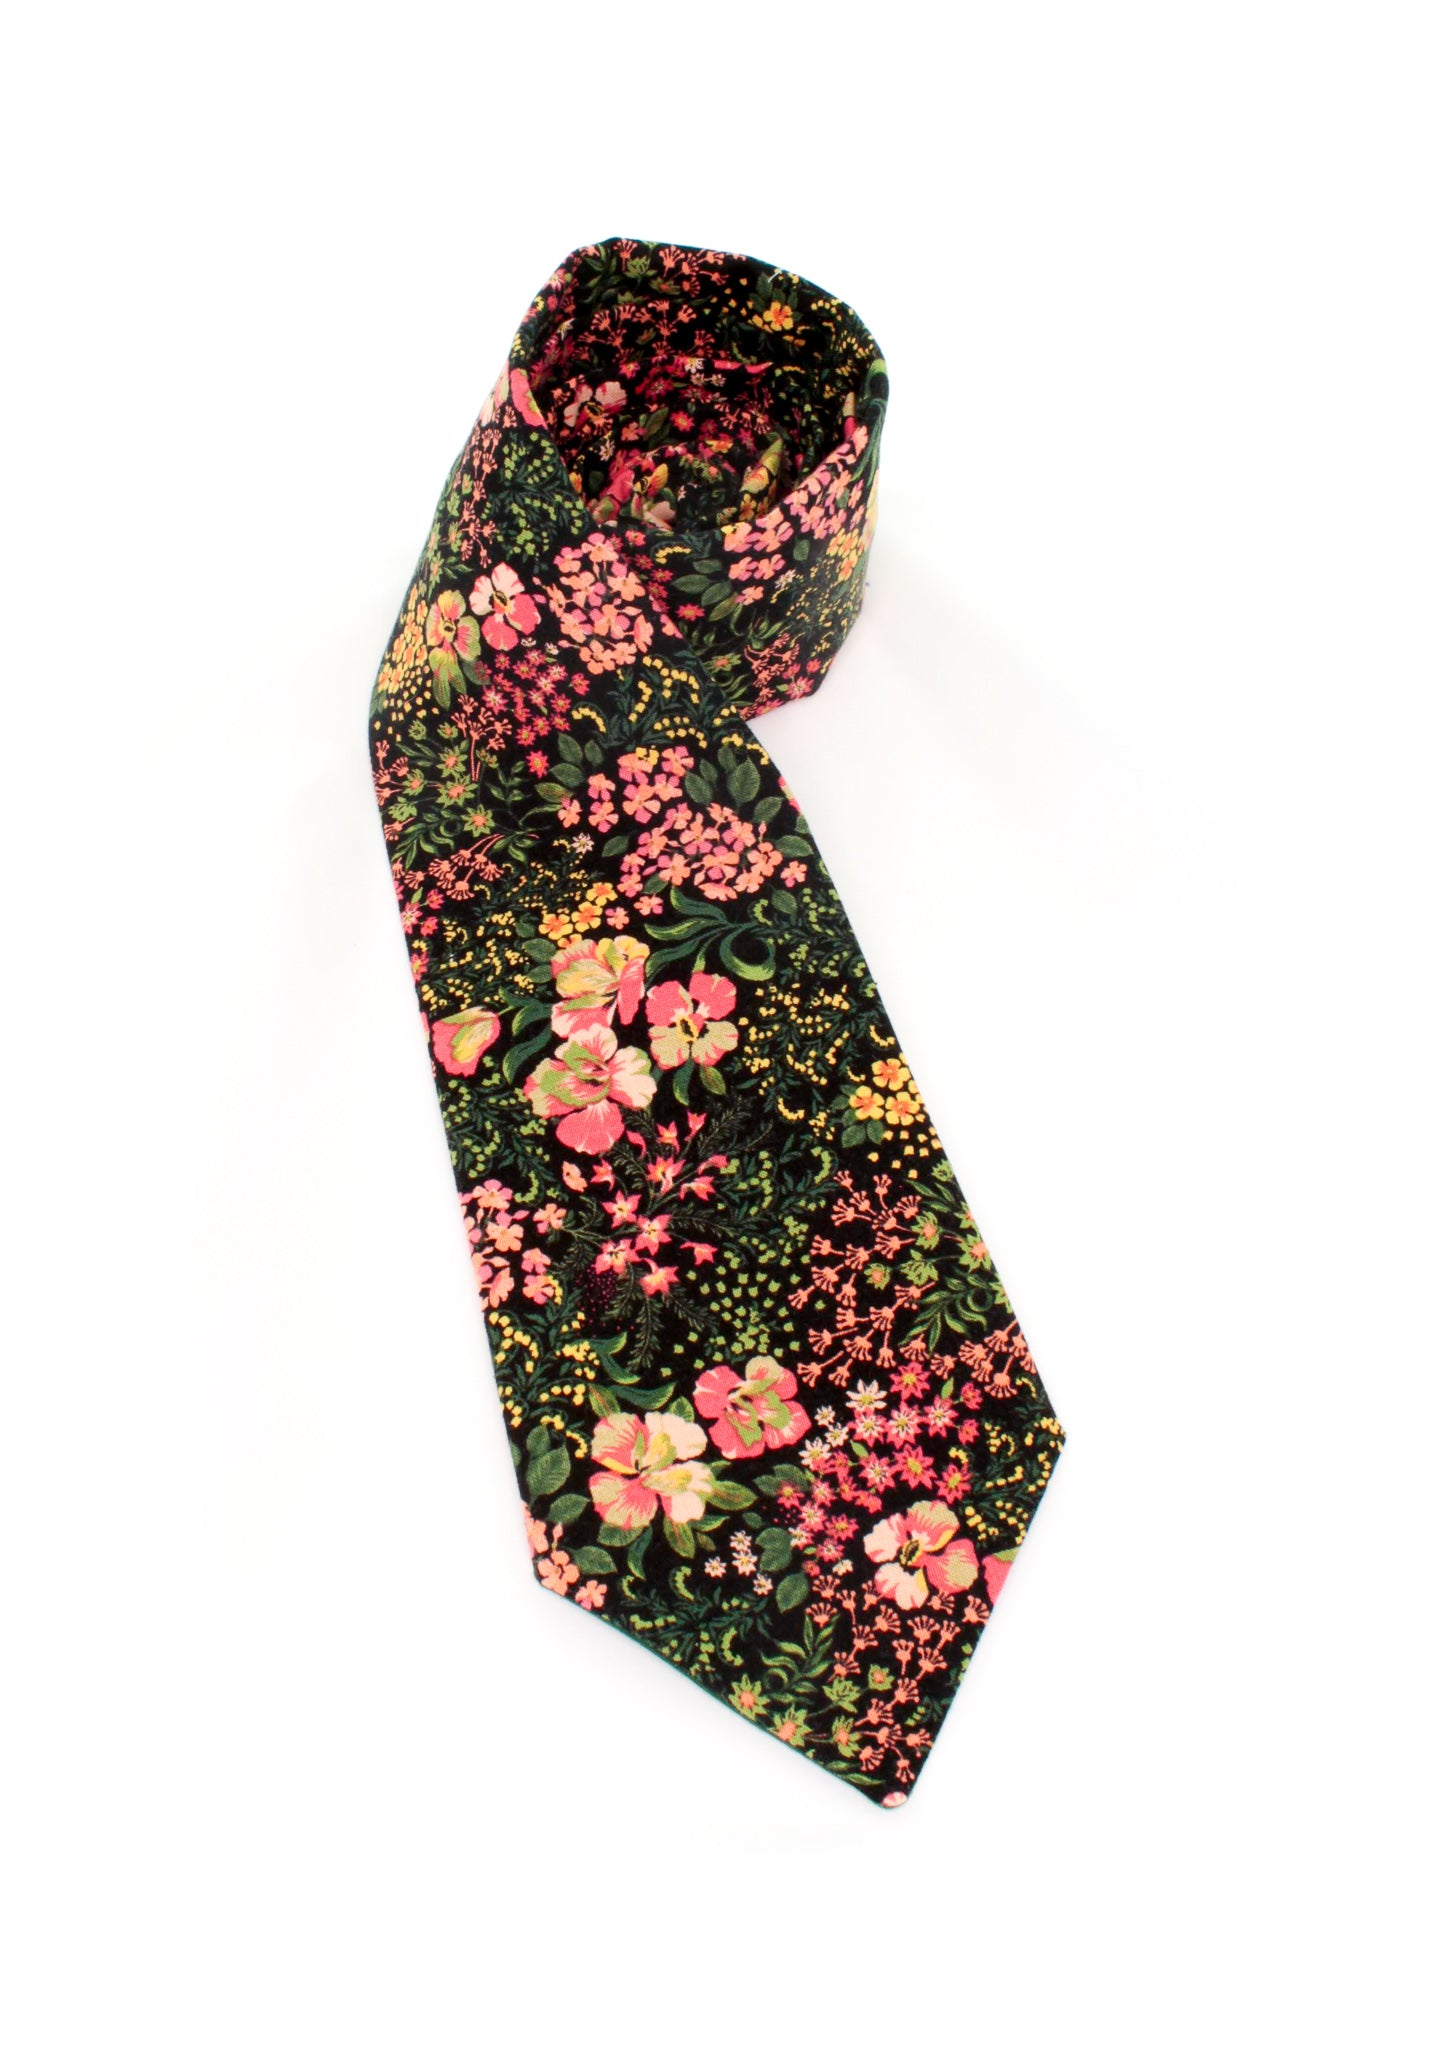 tie floral flowers olive pink necktie gift for him www.GroovyTieSquad.com